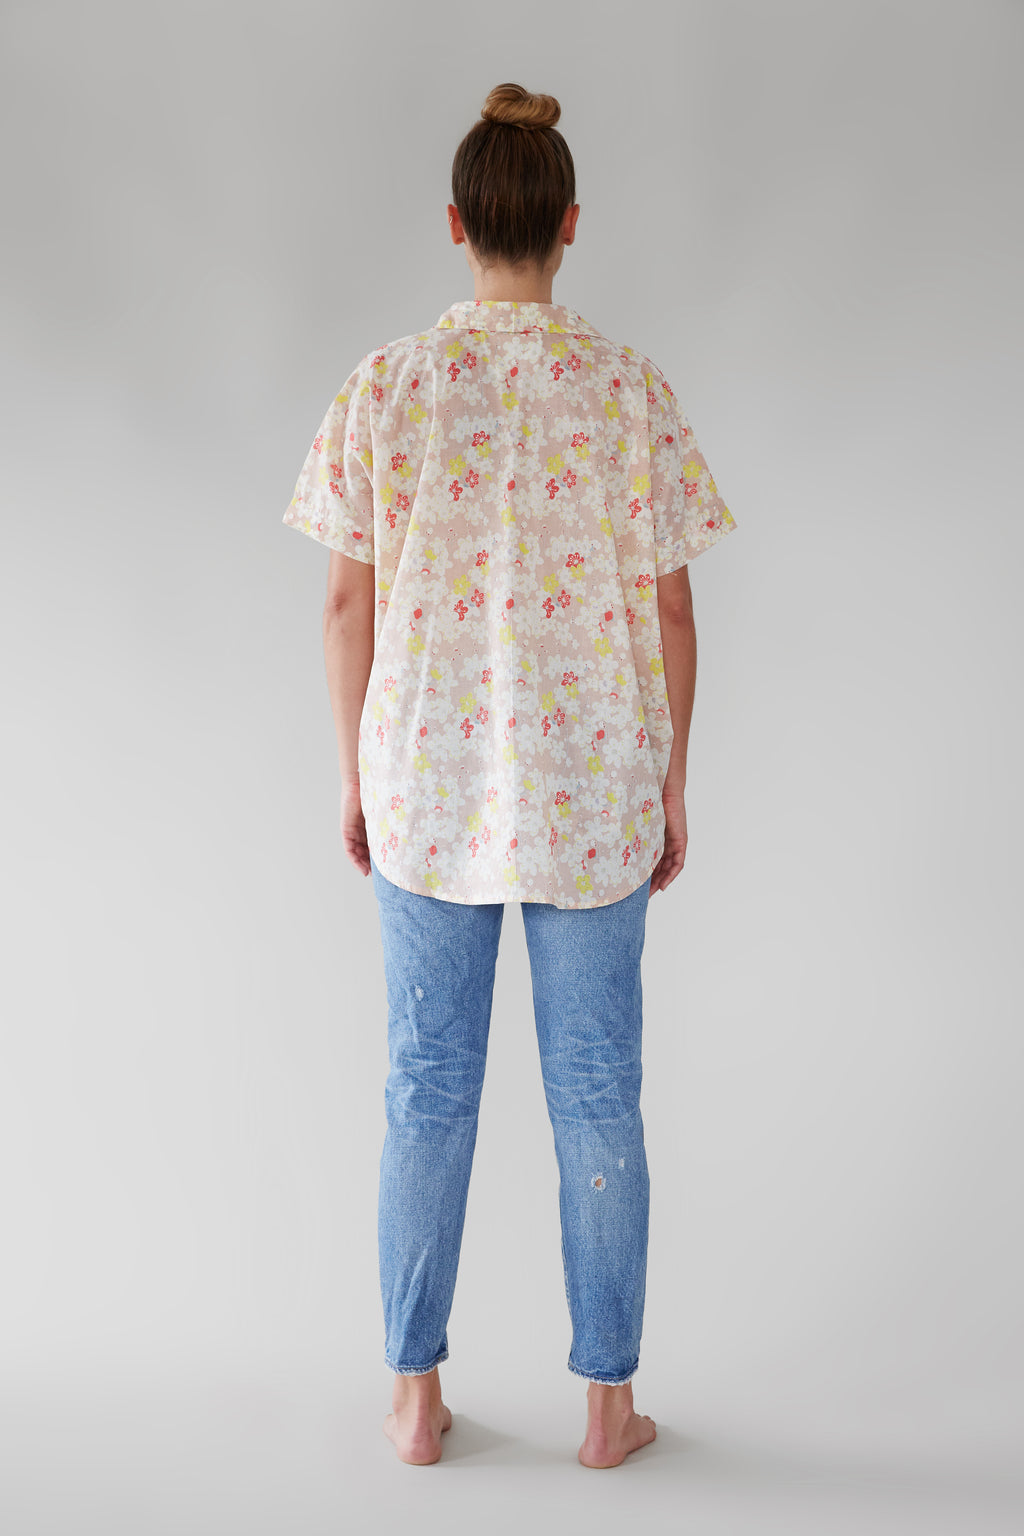 ACACIA Mombasa Button Up | Cherry